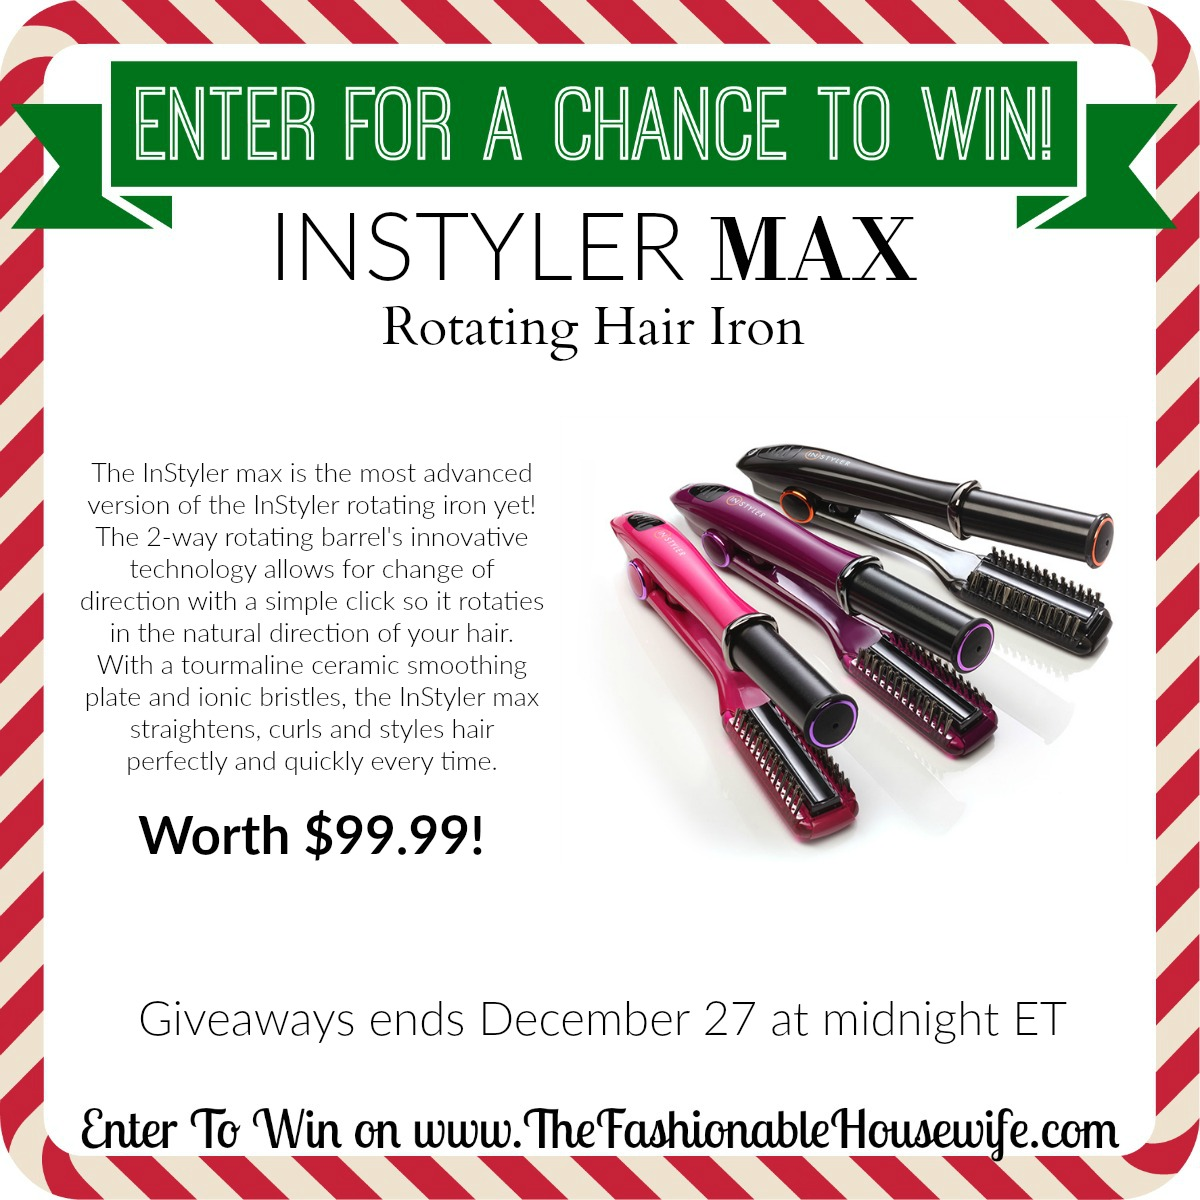 Enter To Win INSTYLER MAX Rotating Hair Iron